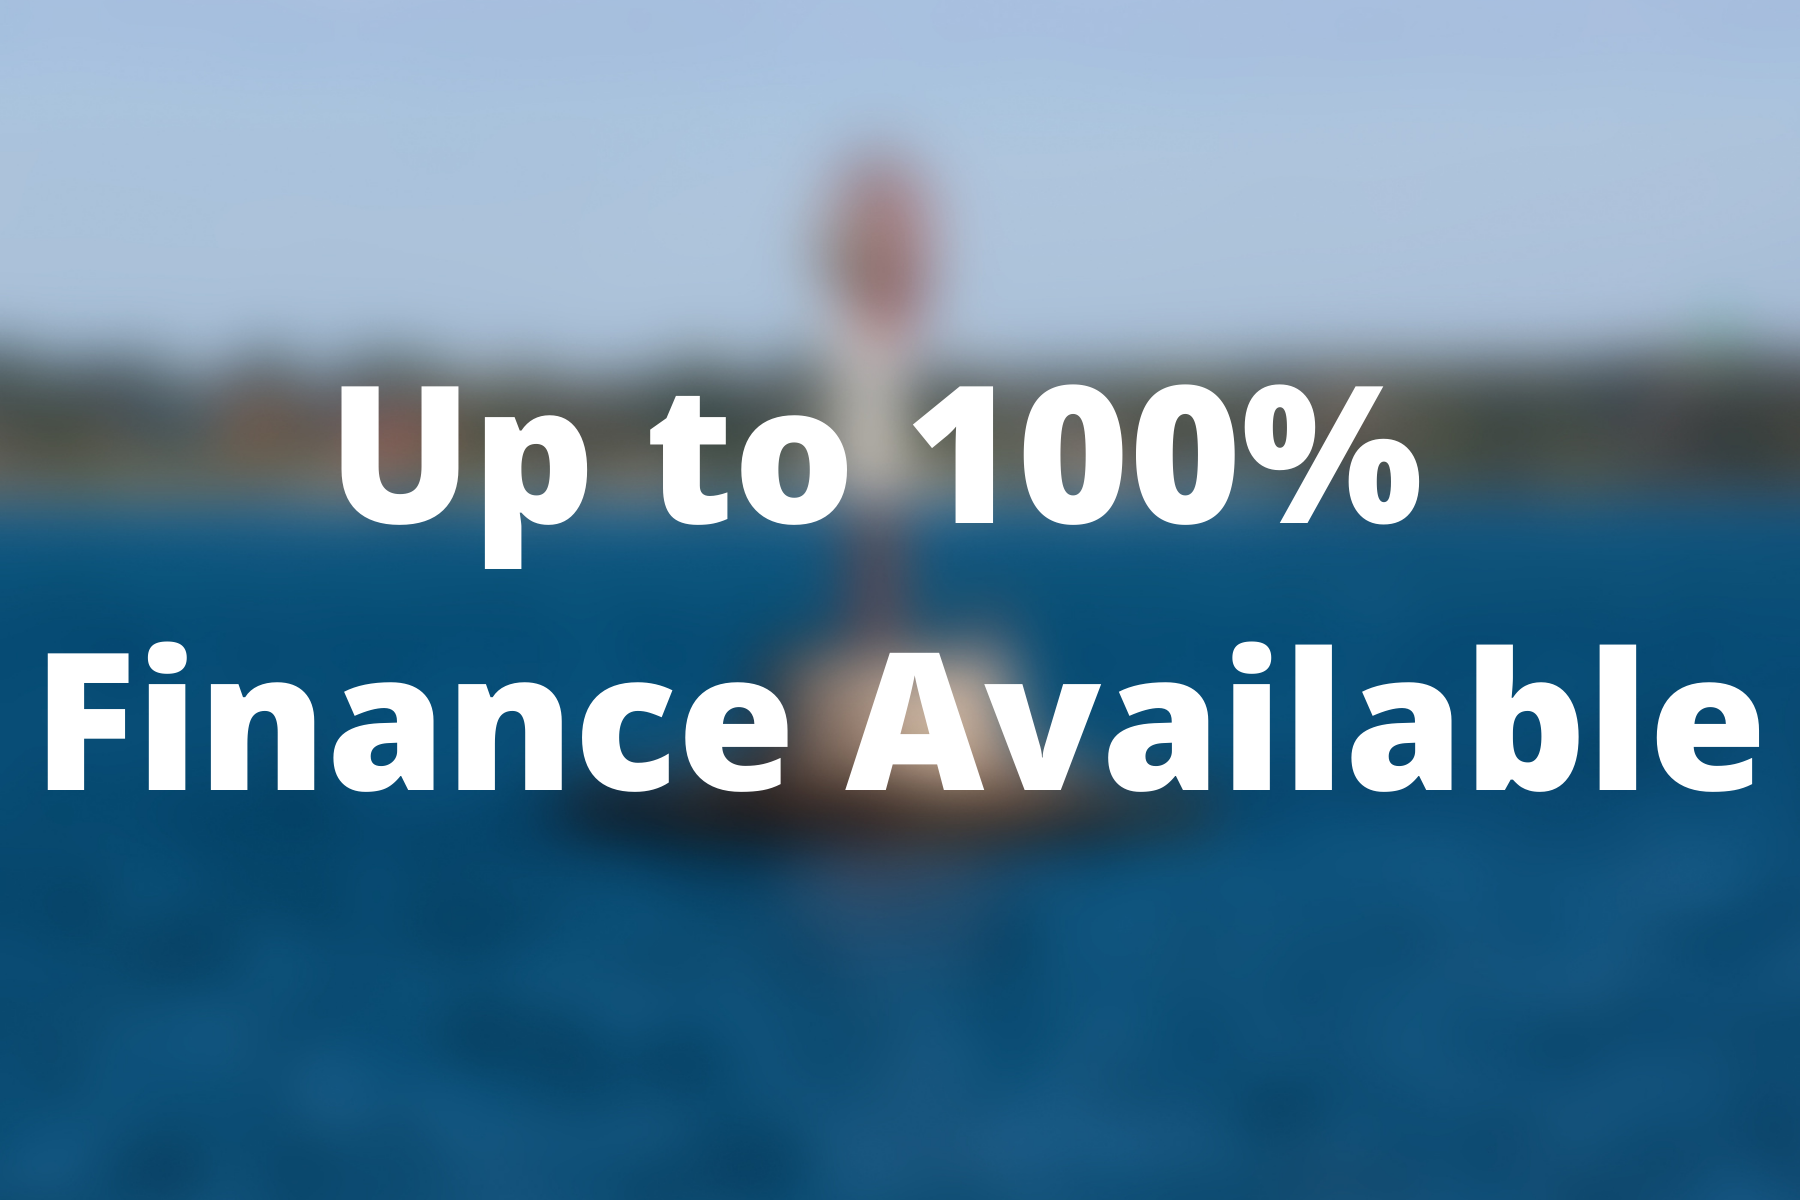 Up to 100% Finance Available